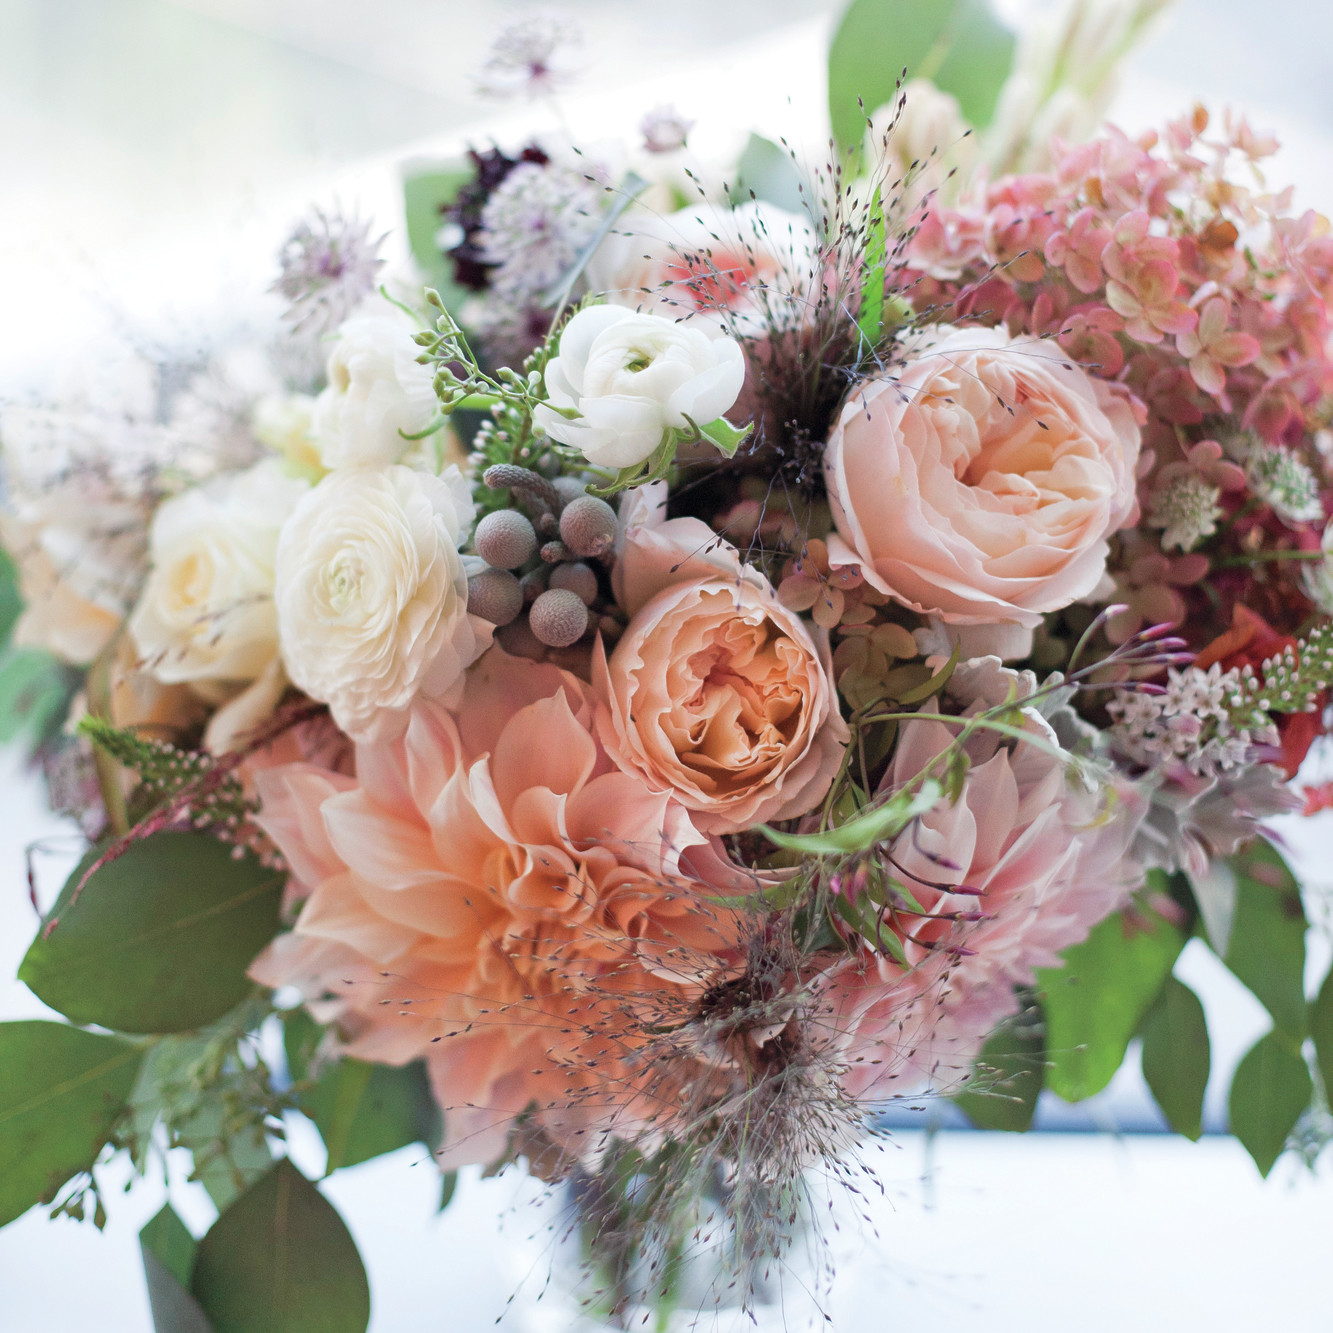 The 50 best wedding bouquets martha stewart weddings classic wedding bouquets izmirmasajfo